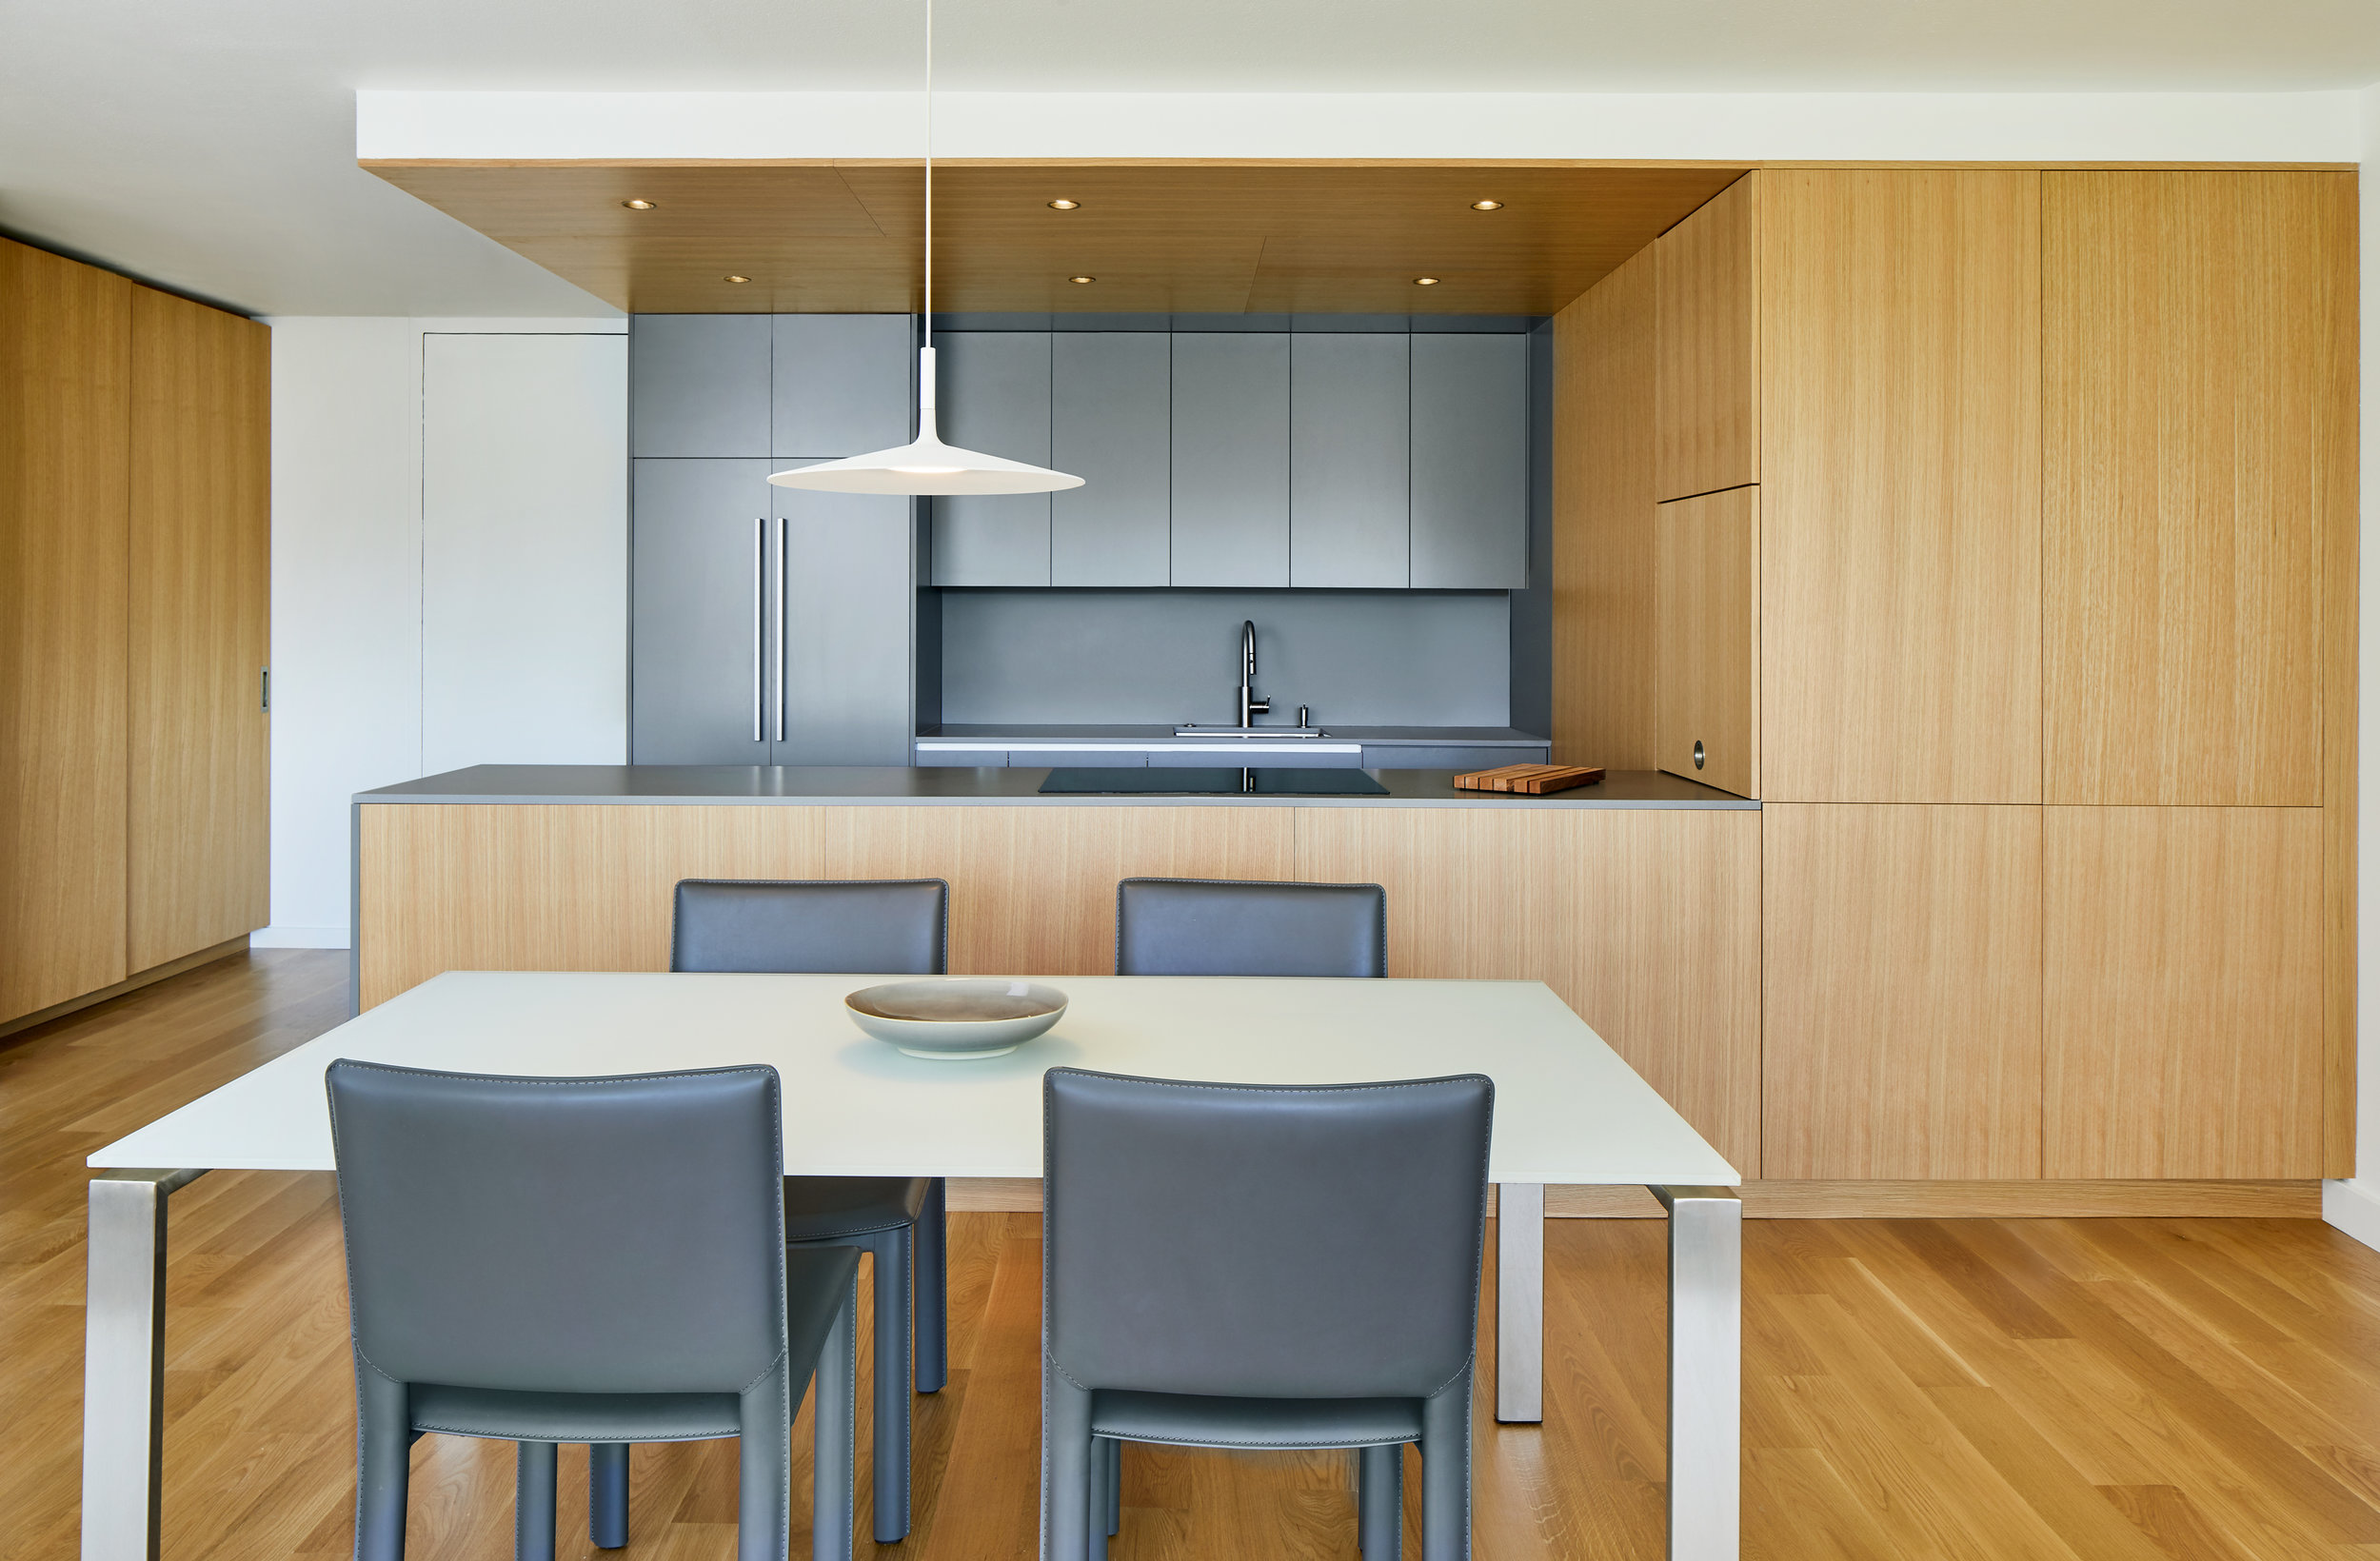 Grey / Oak Kitchen and Dining Room - Apartment Renovation, Chicago